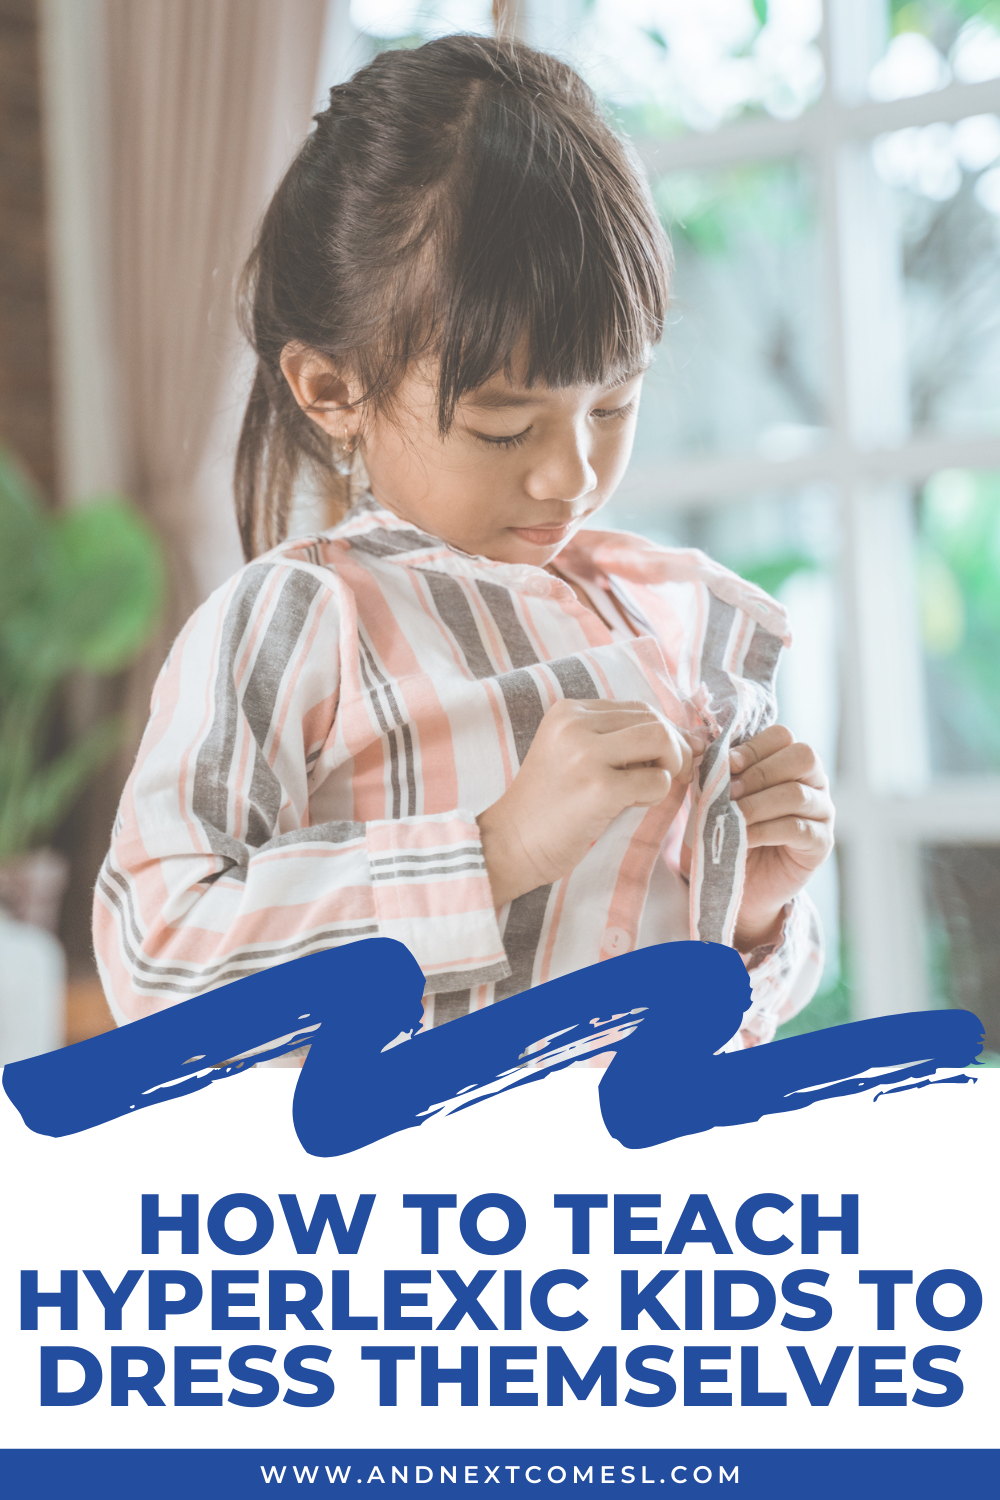 Tips and strategies for teaching hyperlexic and autistic kids how to get dressed by themselves